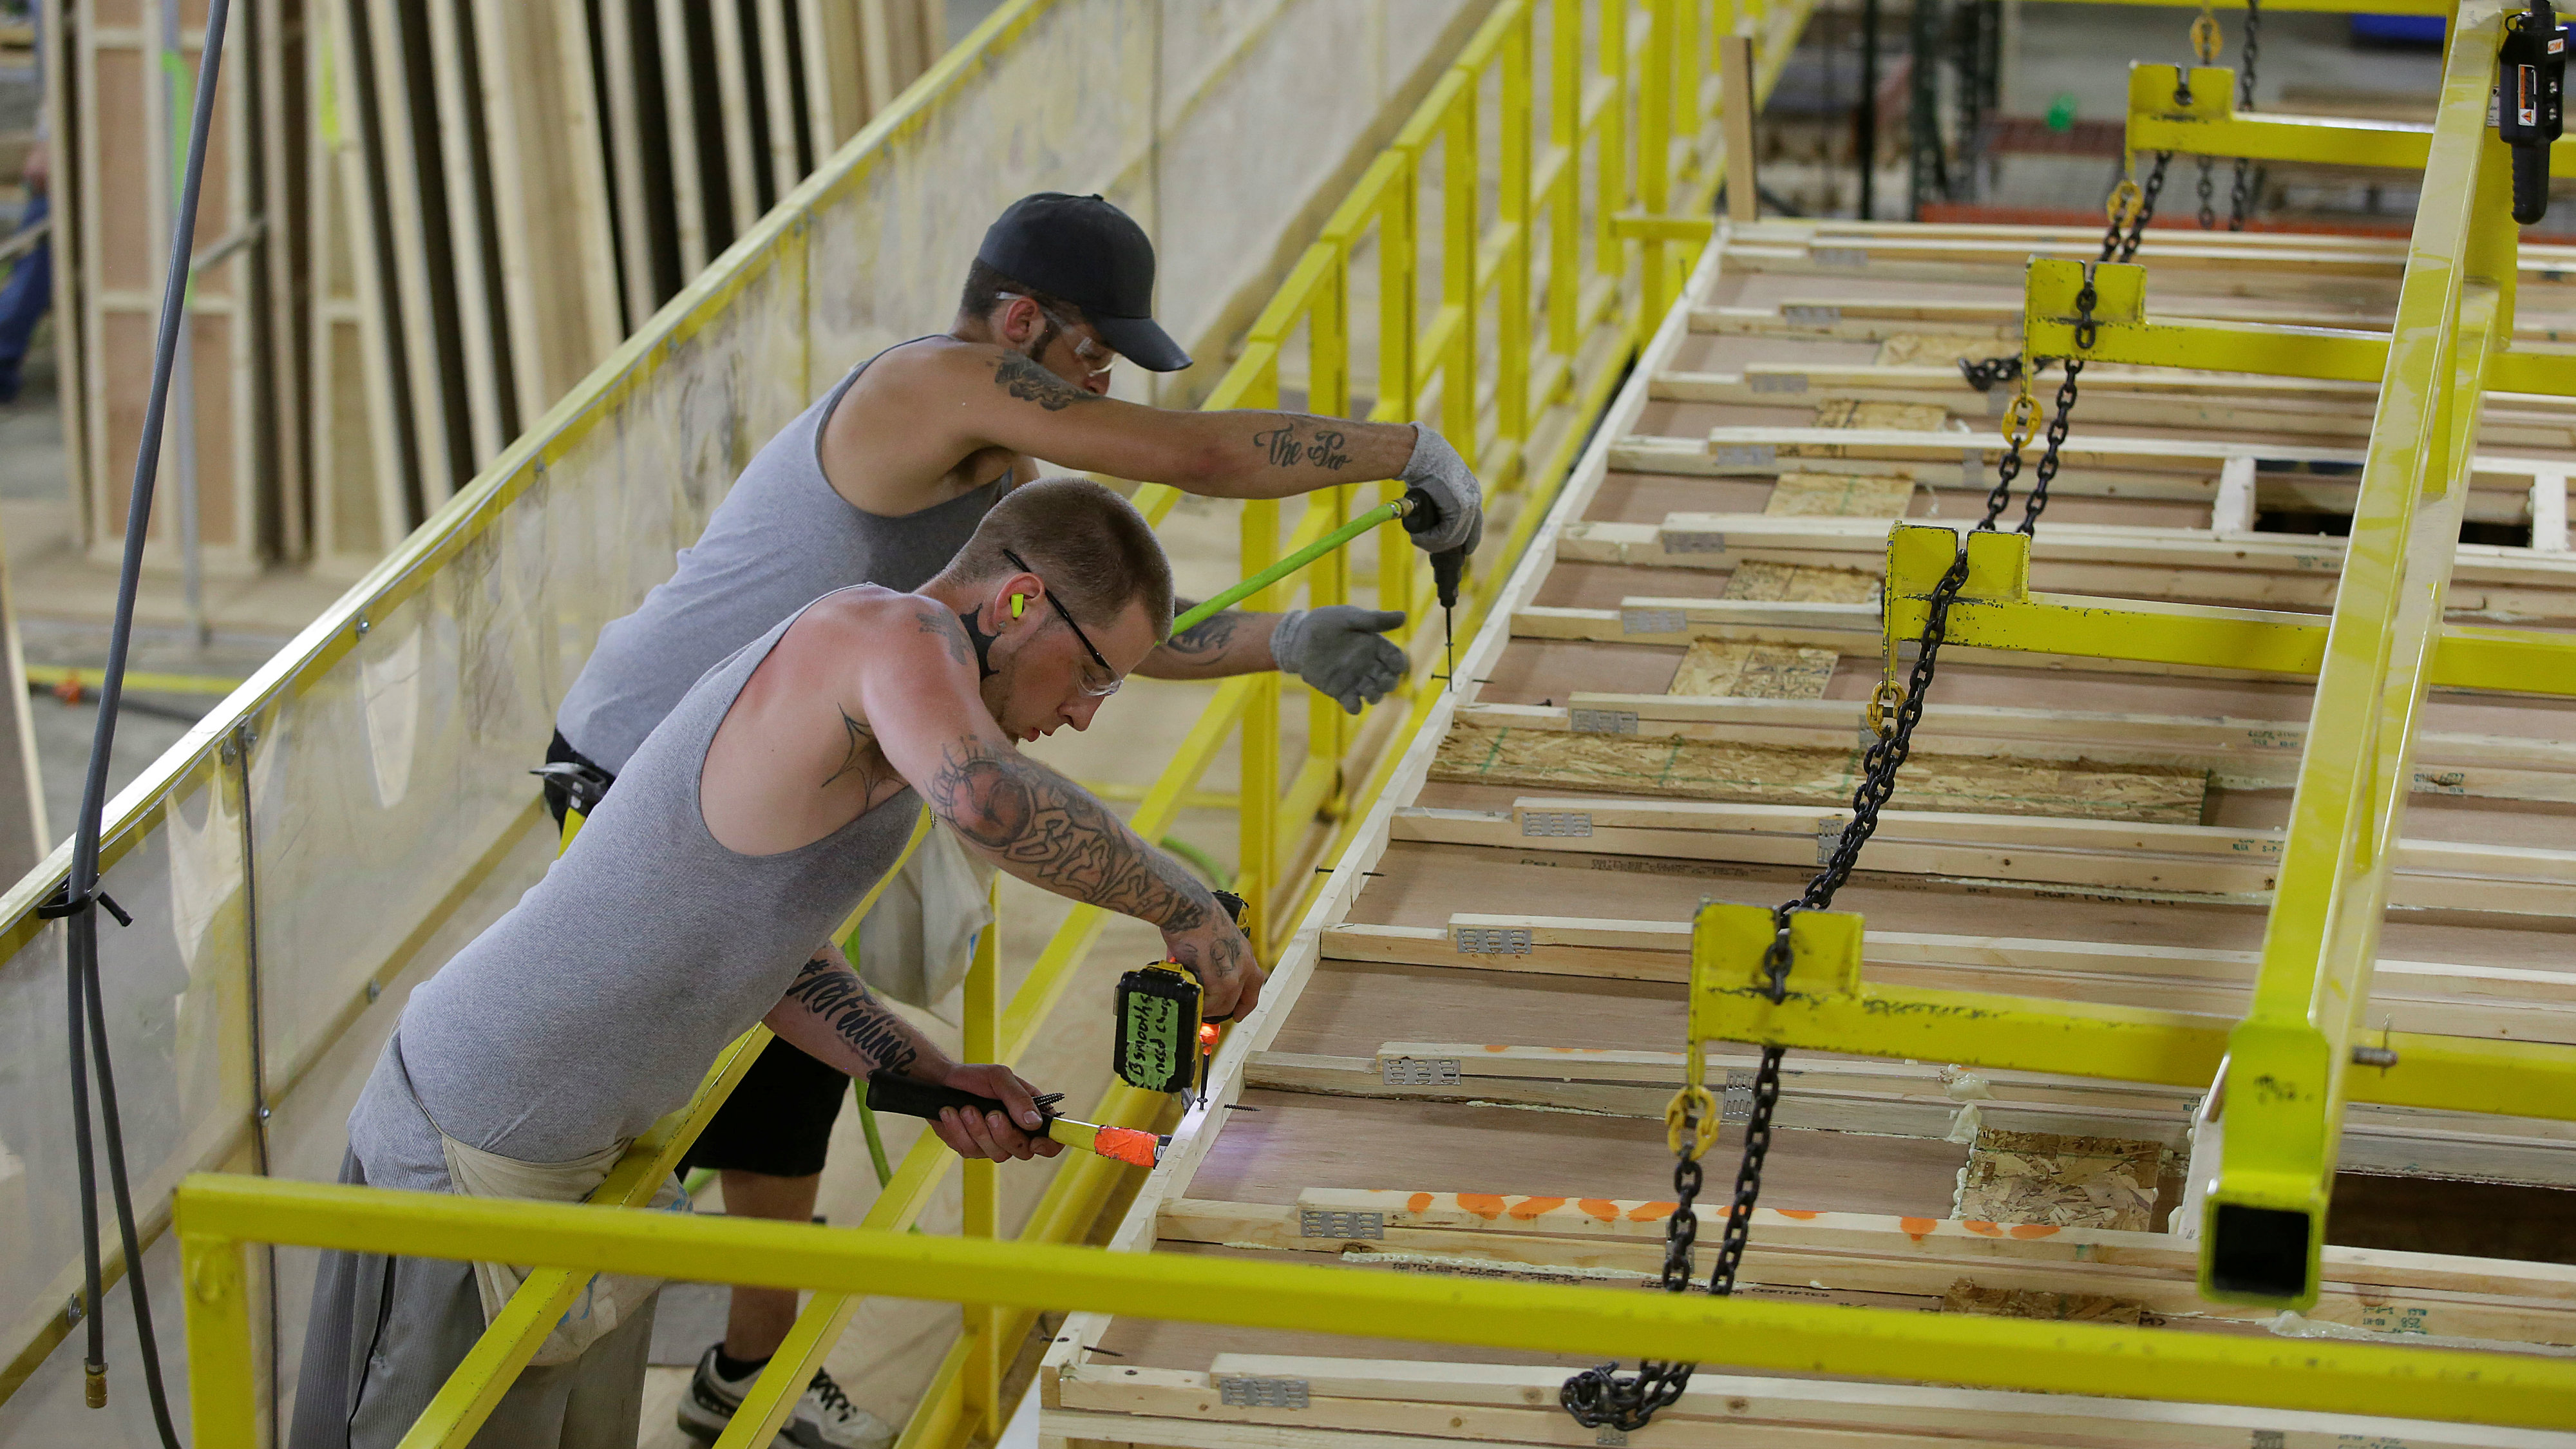 Workers build the roof of a single axel towable Pioneer traditional recreational vehicle at the Thor Industries Heartland RV Assembly Plant in Elkhart, Indiana, U.S. June 13, 2017. Picture taken June 13, 2017.